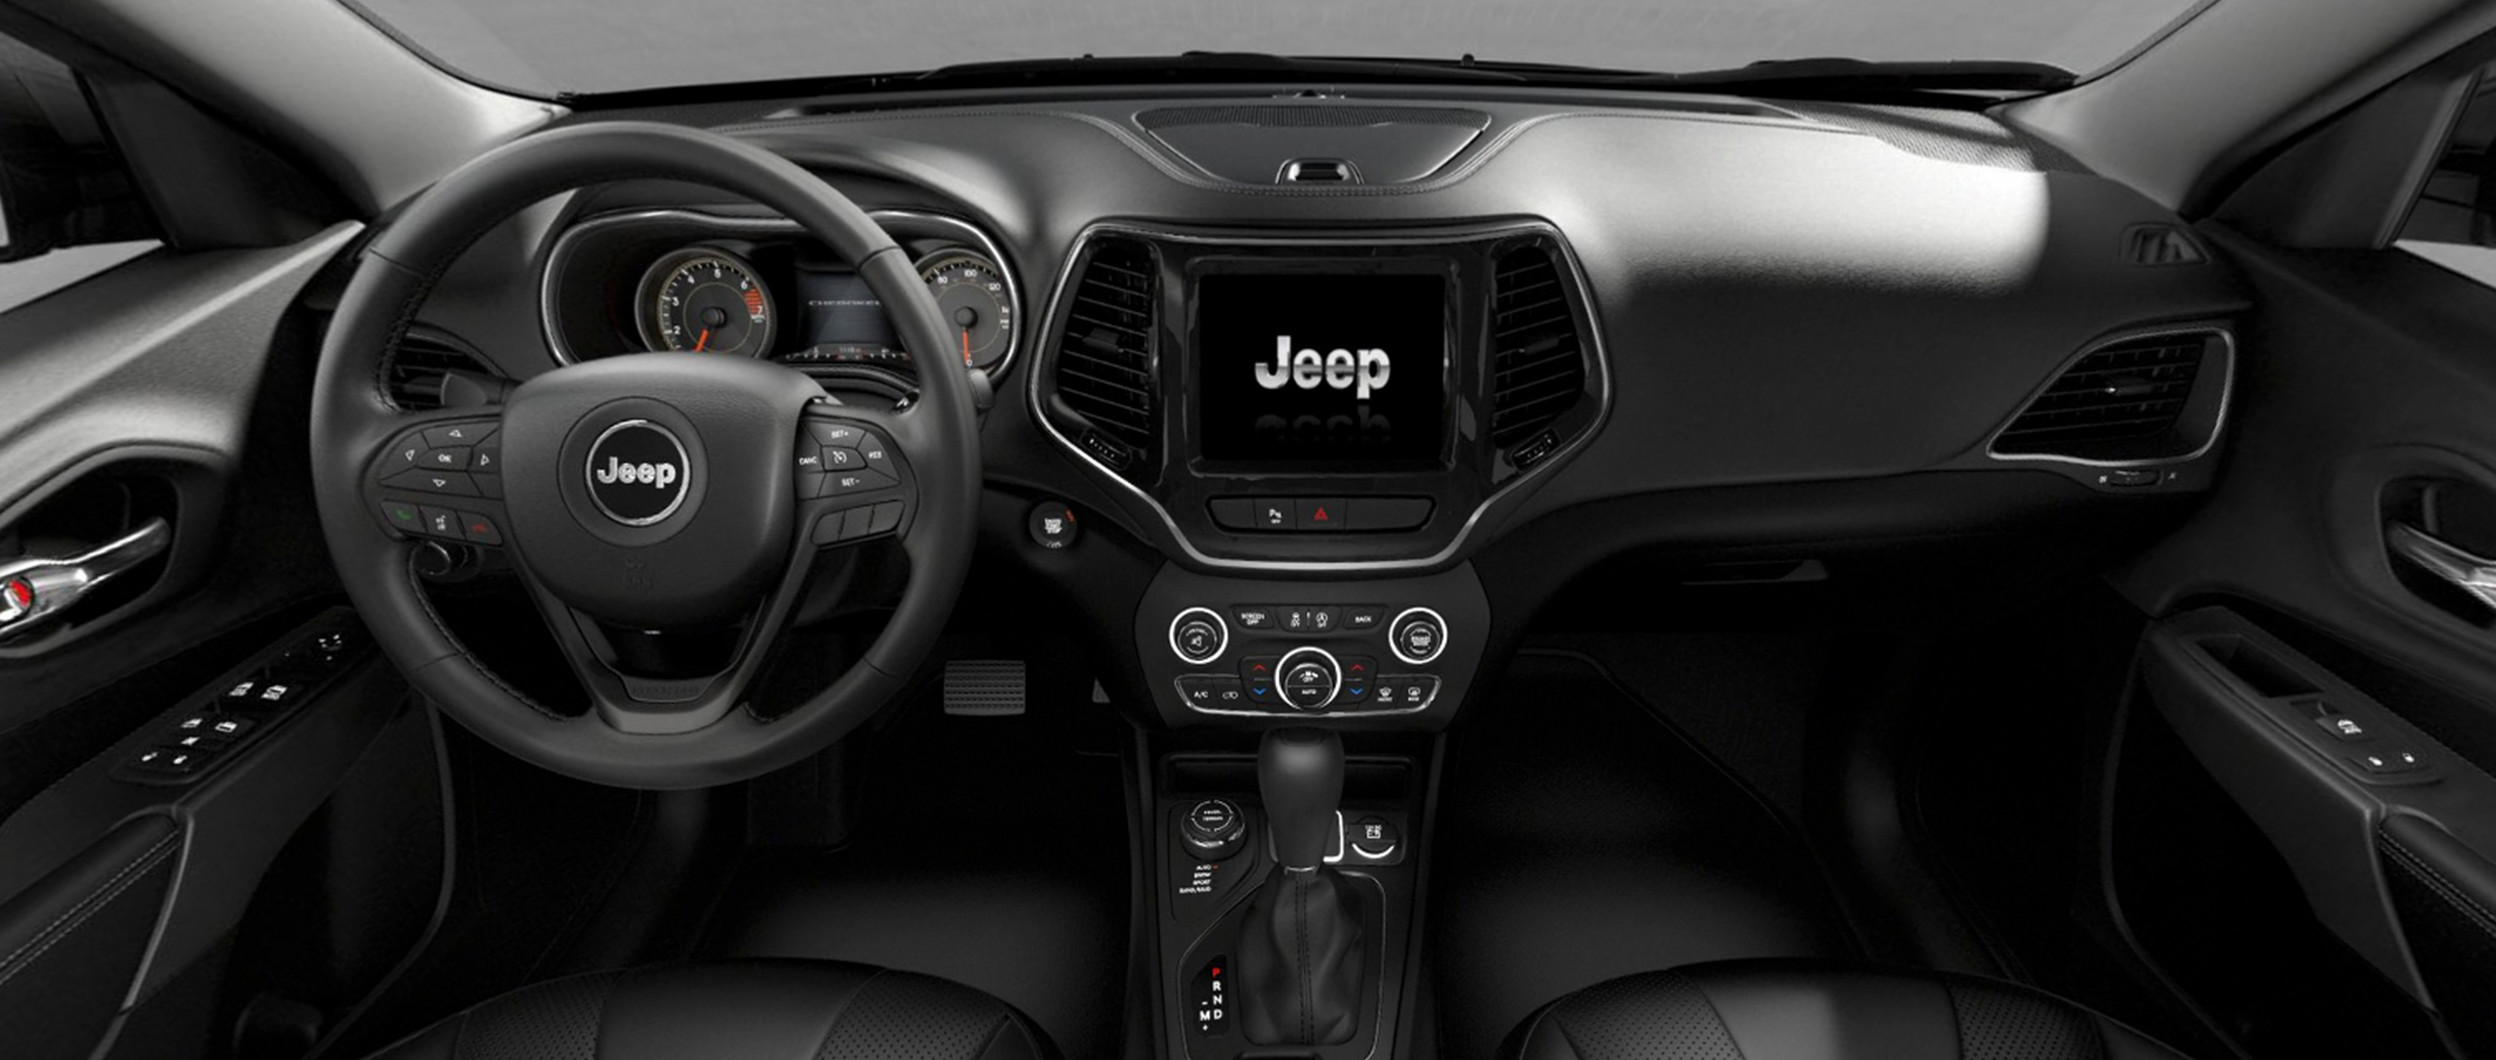 Honda Hrv Interieur New 2019 Jeep Cherokee Interior Photos And Images